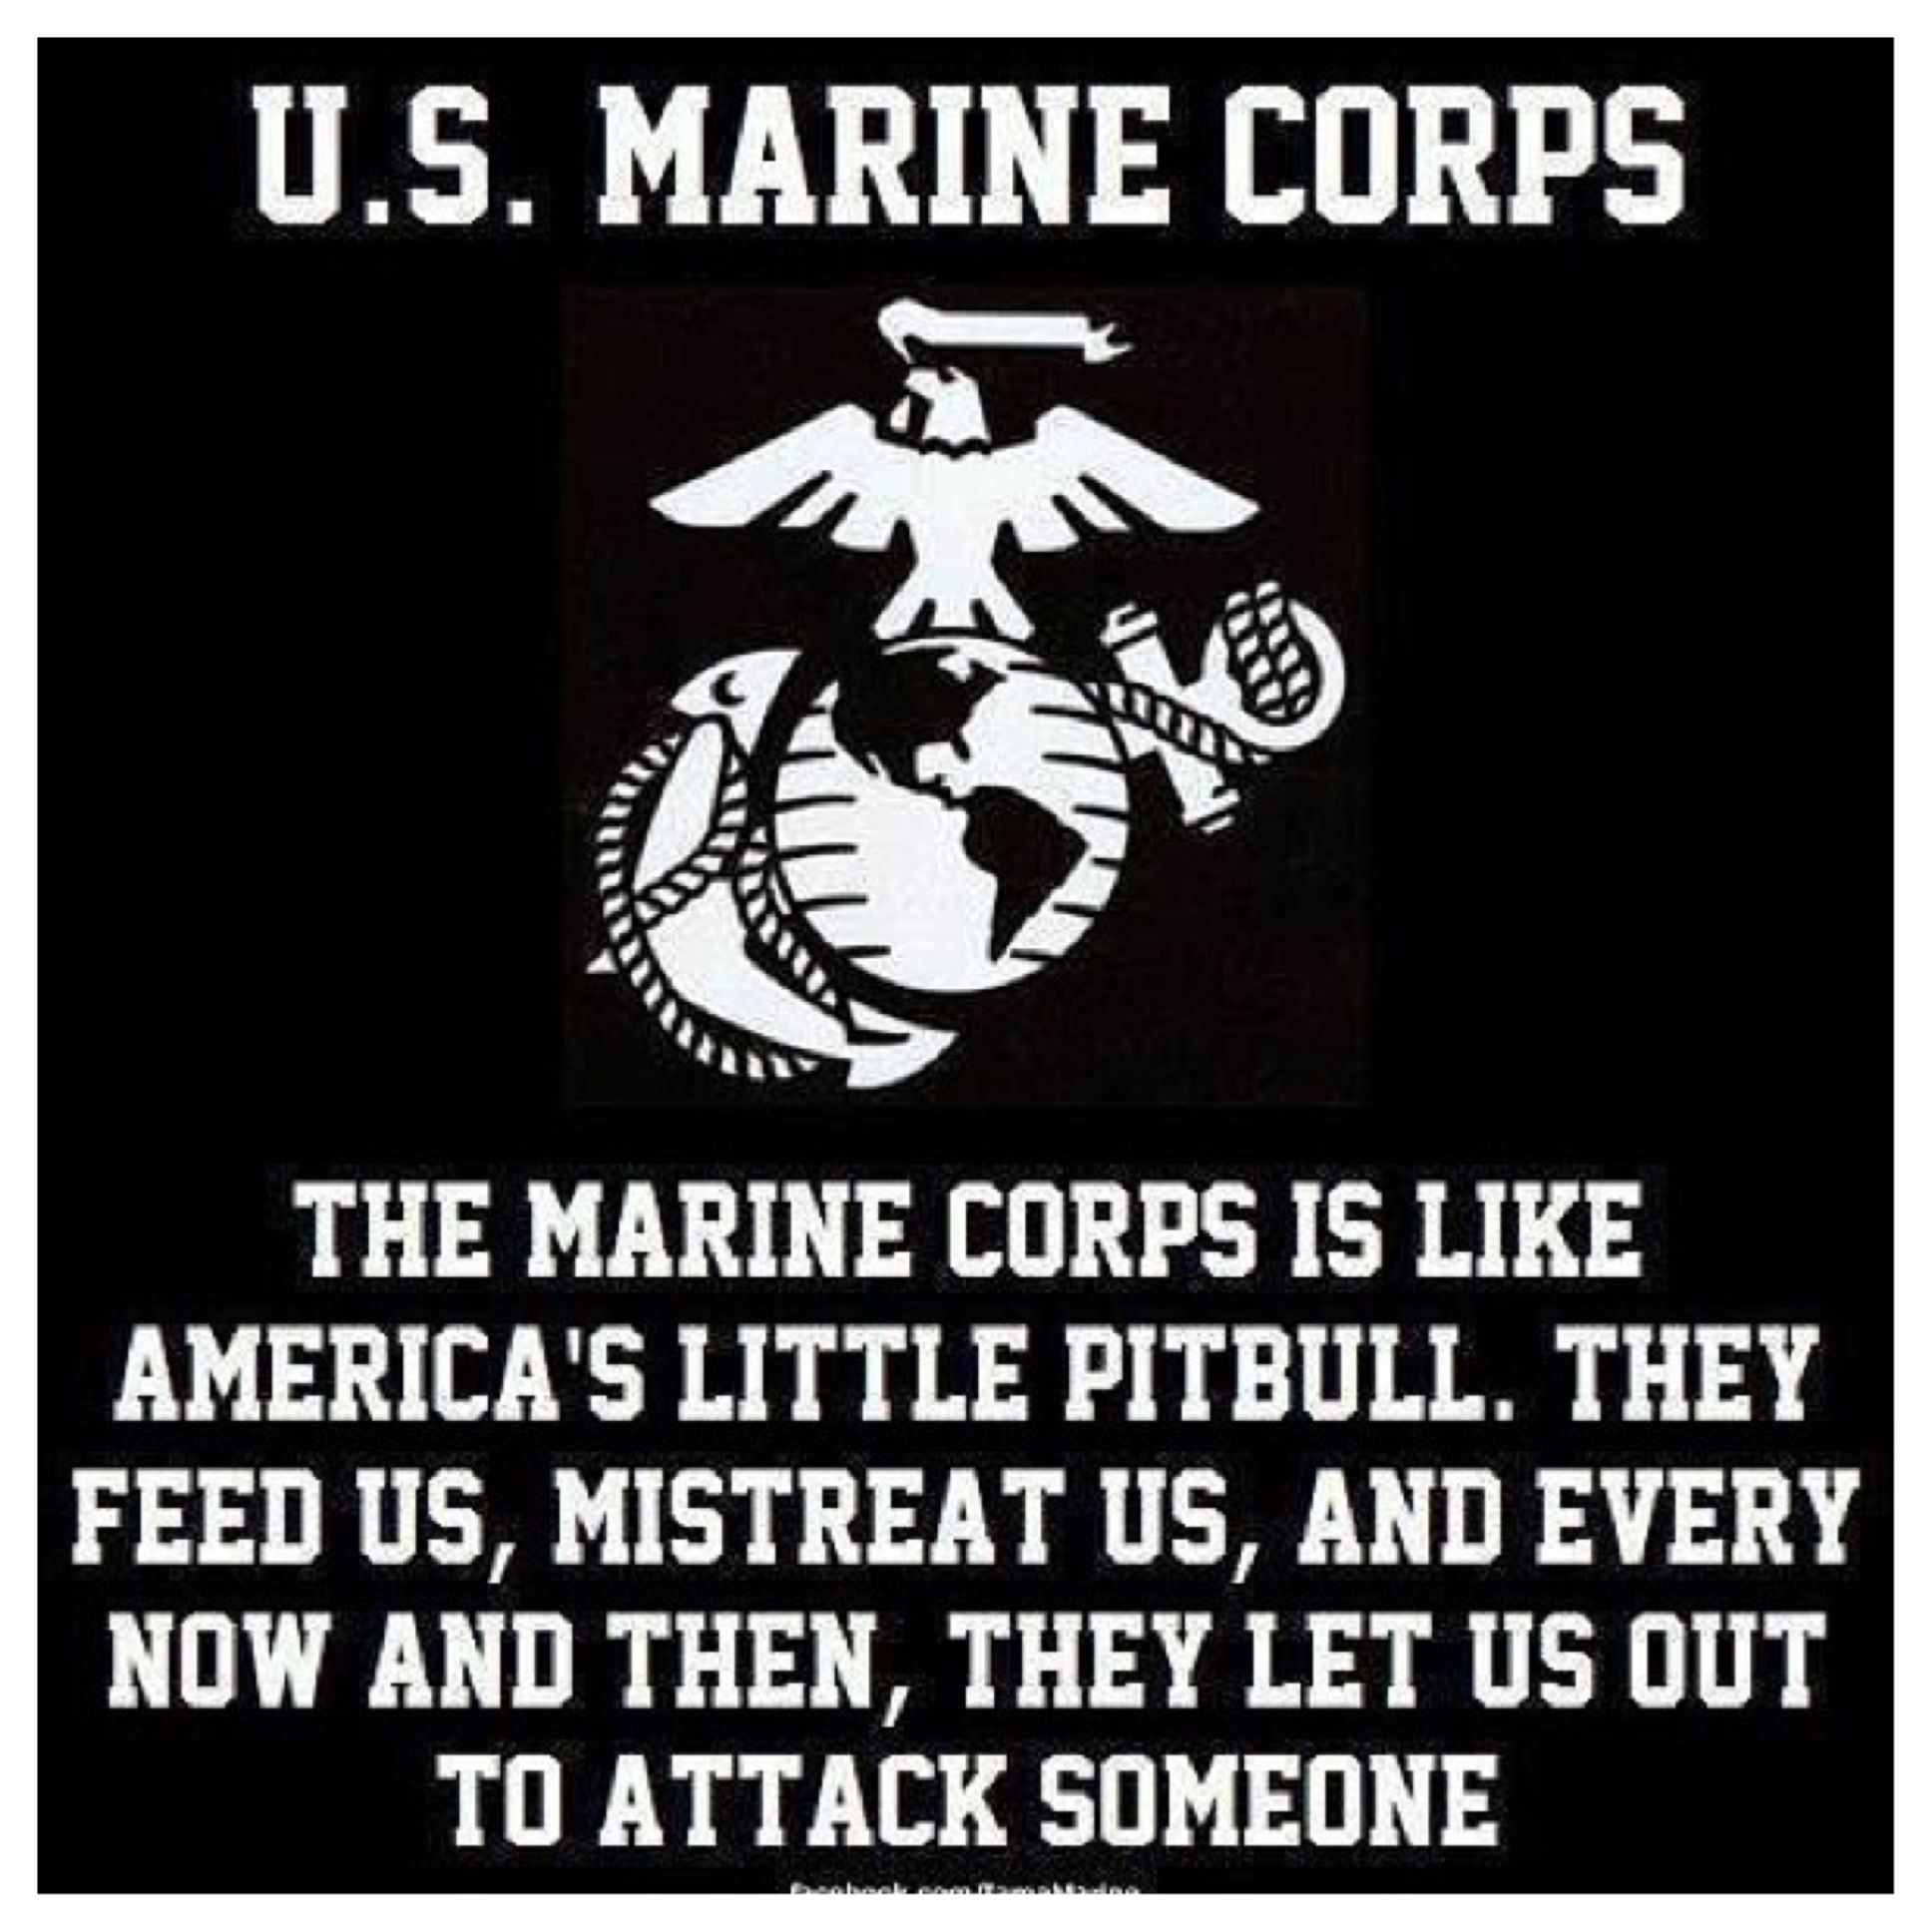 Marines Quotes Unique J.b.atlsuperman  Instagram Photos And Videos  Marine Corps . Design Ideas